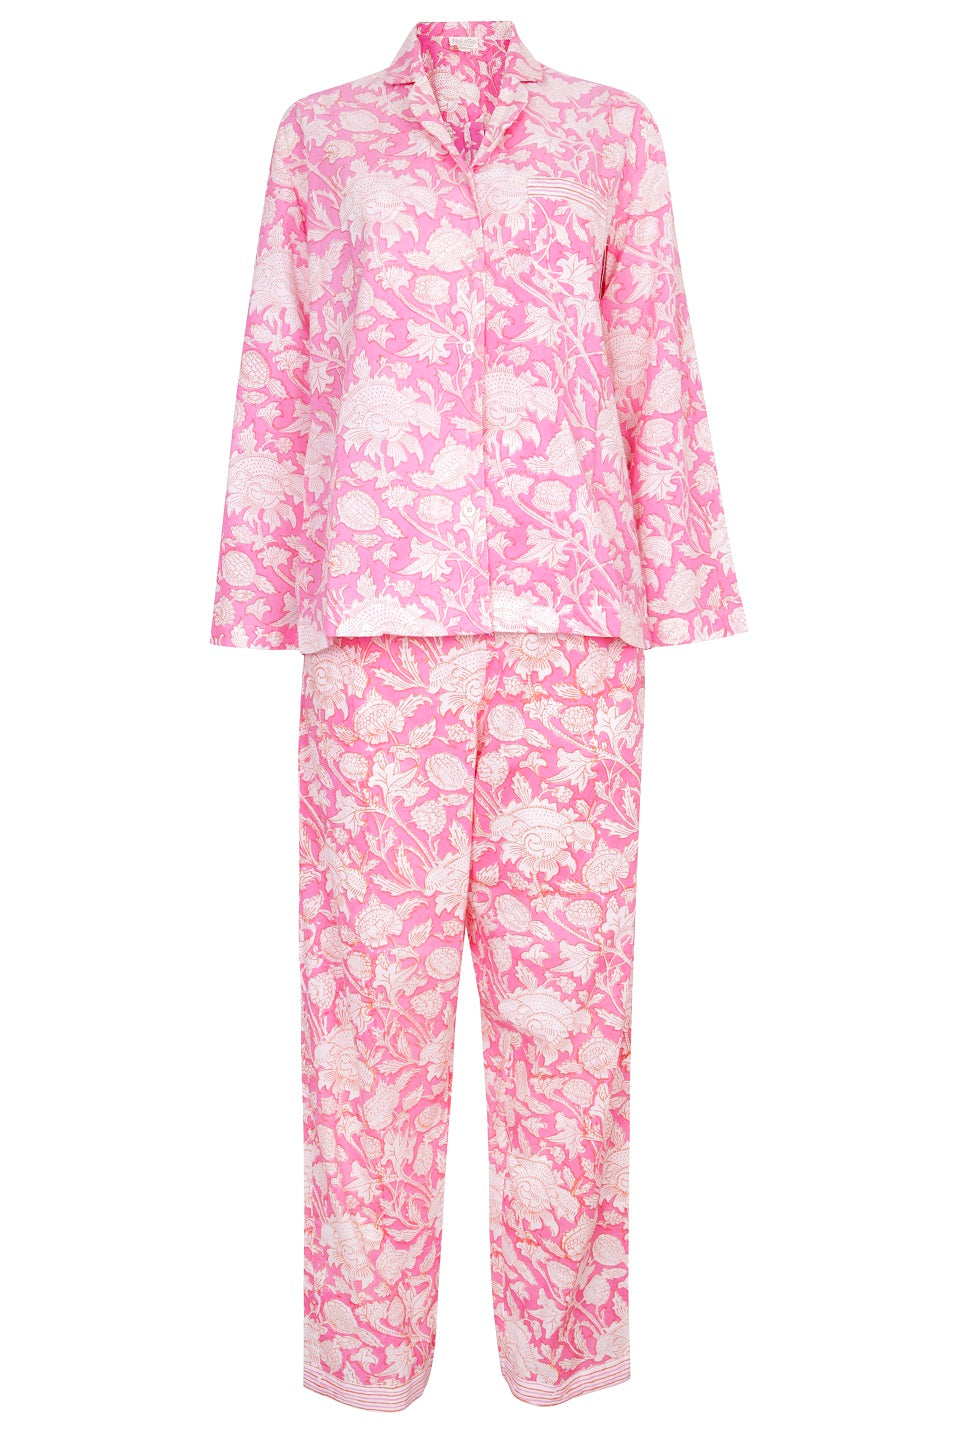 Hand Block Printed Long PJs in Hibiscus Pink